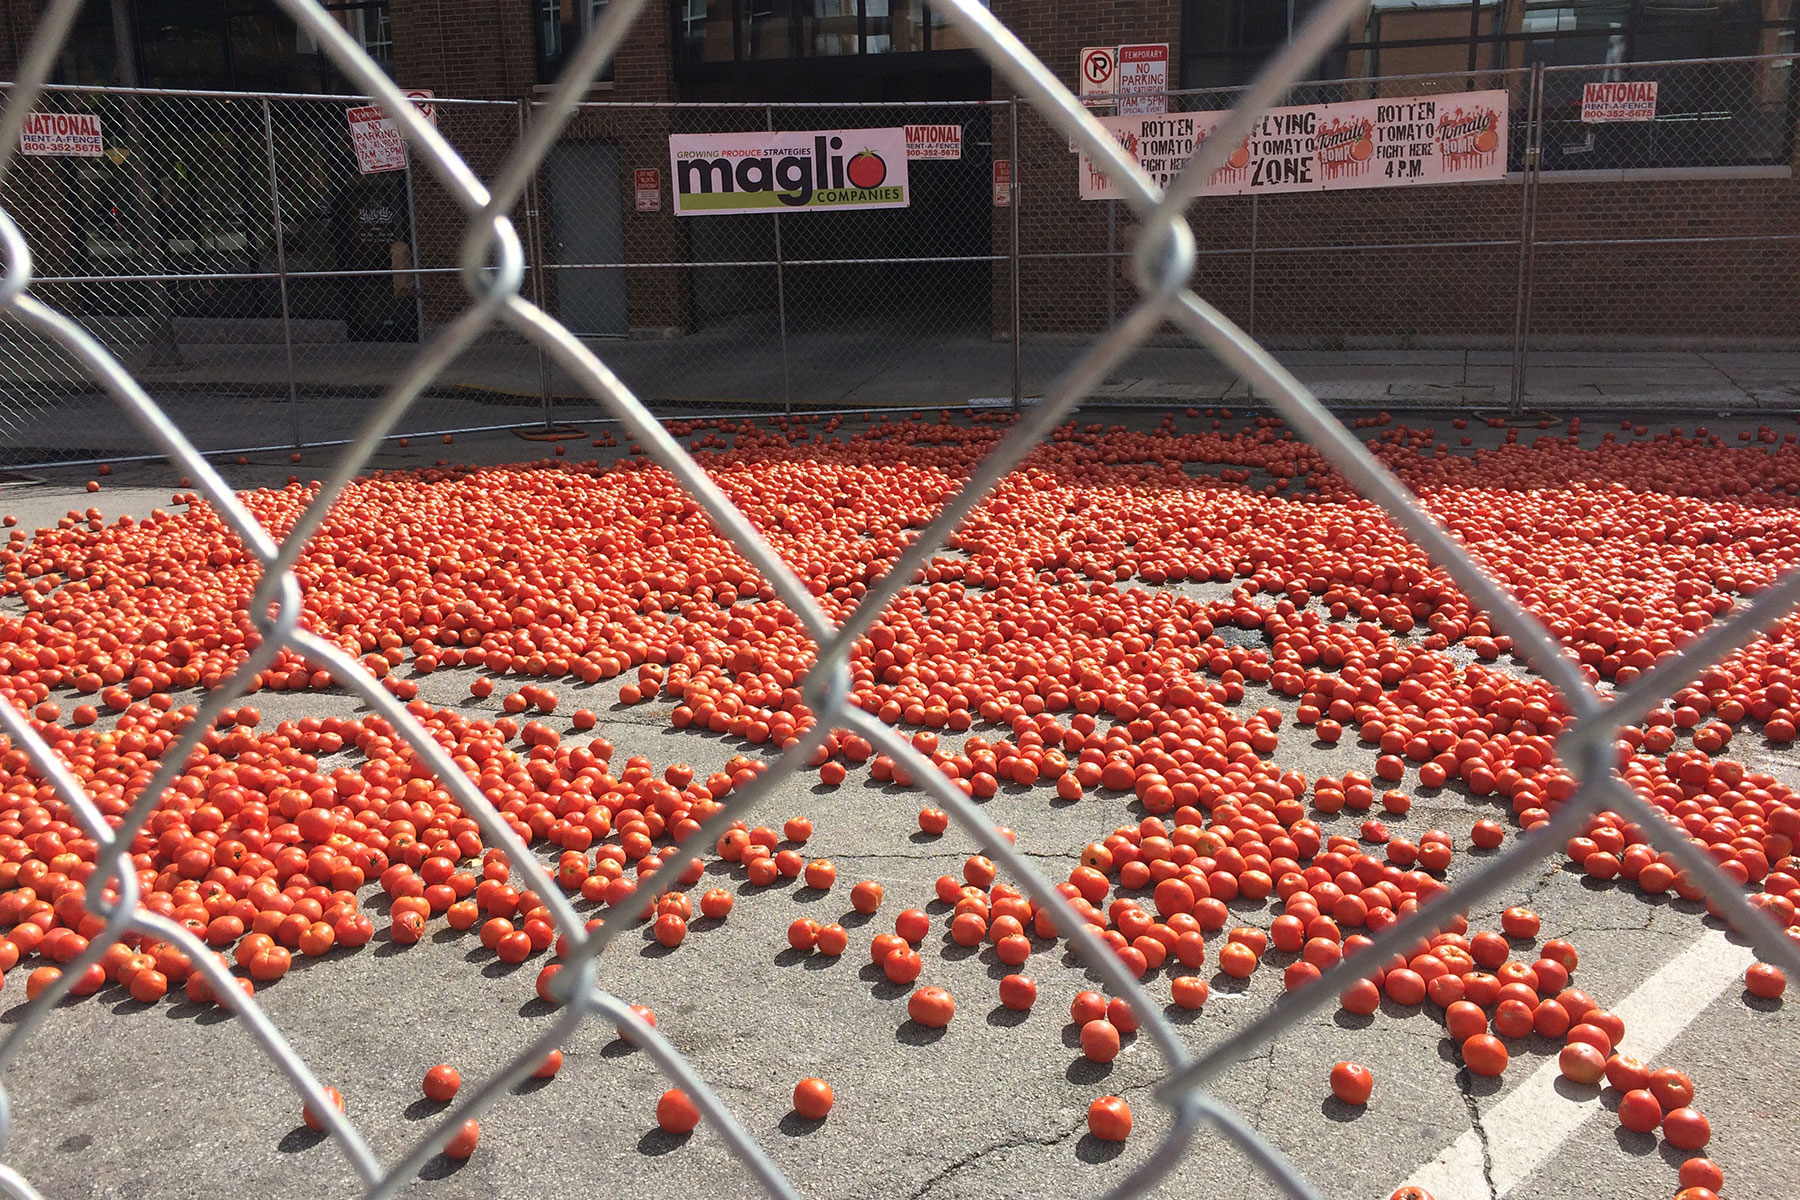 091216_tomato-romp-fights-to-end-hunger-in-east-side-community_004